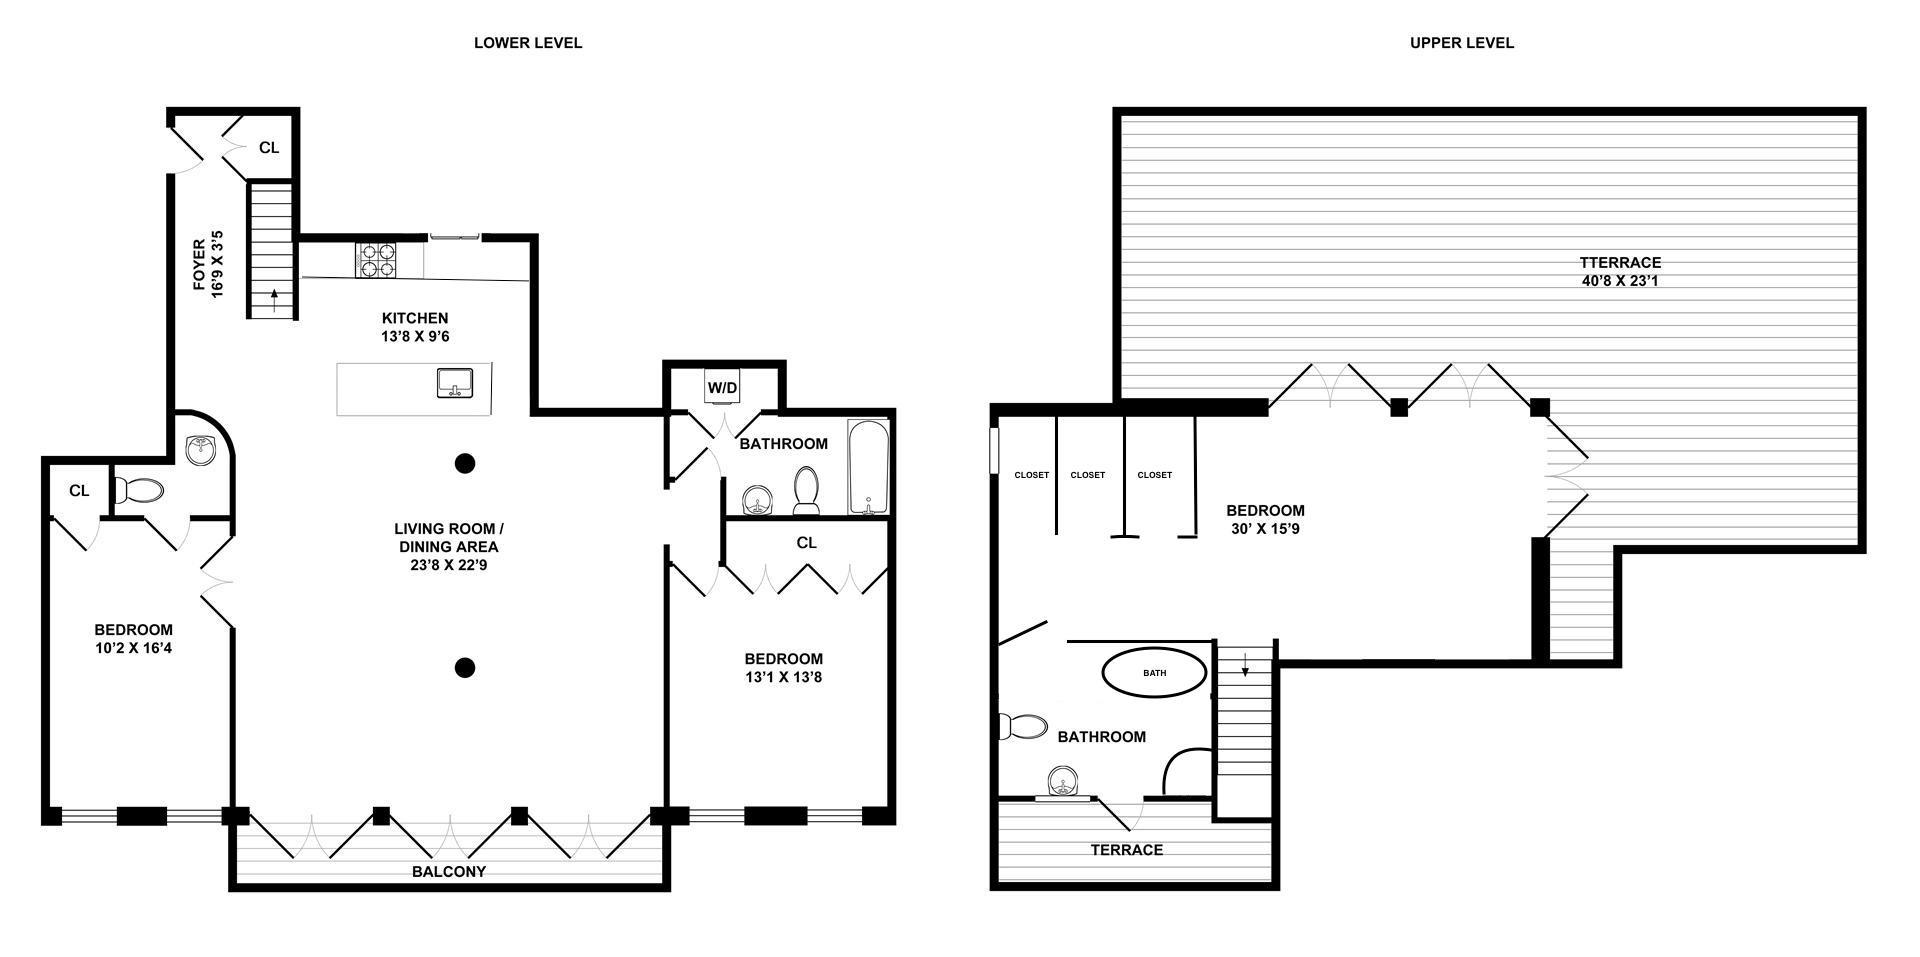 Floor plan of 110 Duane Lofts, 110 Duane St, PH3S - TriBeCa, New York